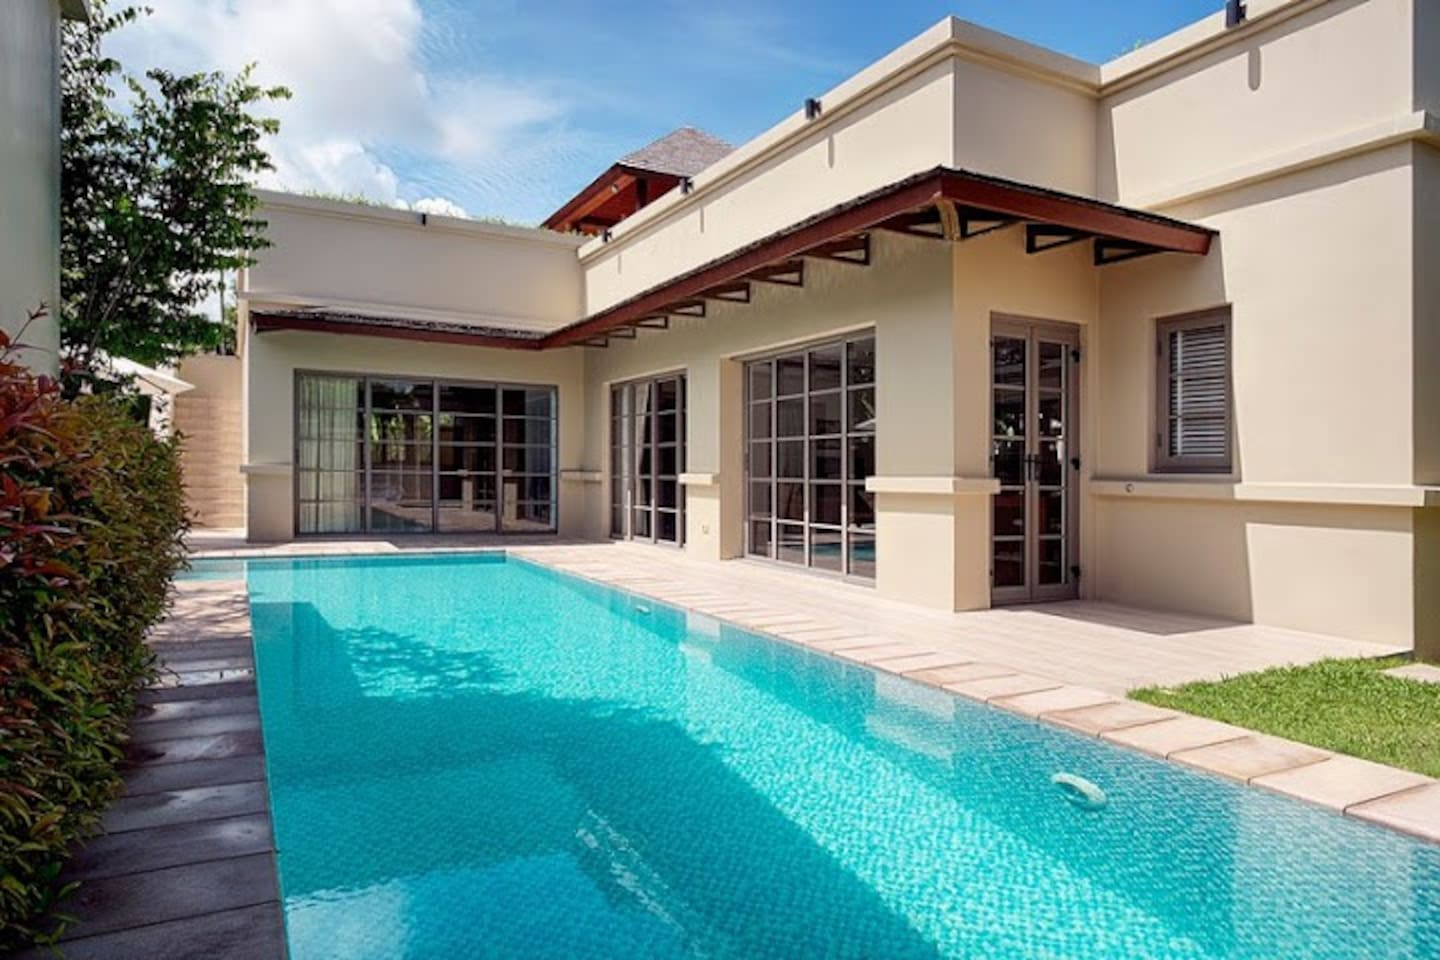 Splendid 2-bedroom L-shape villa with a swimming pool and a garden